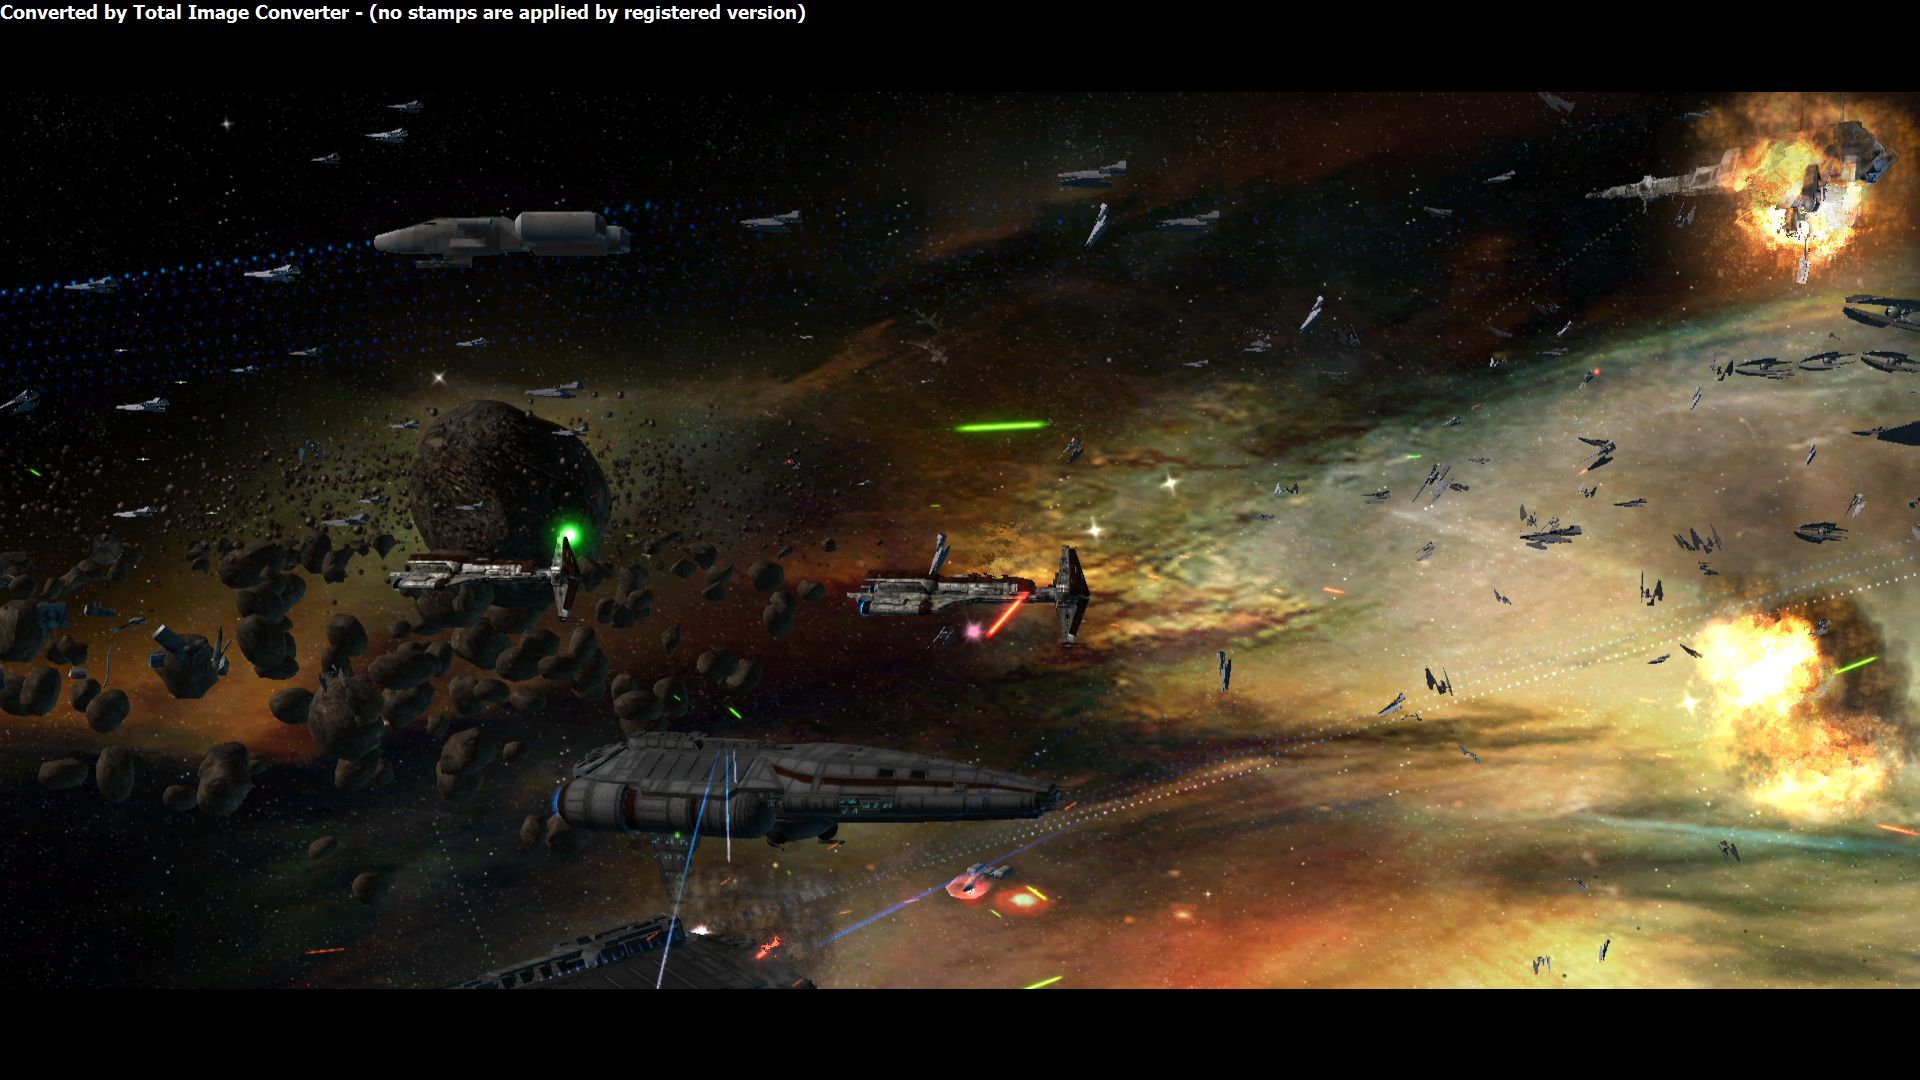 The most epic battle image   Old Republic at War mod for Star Wars 1920x1080